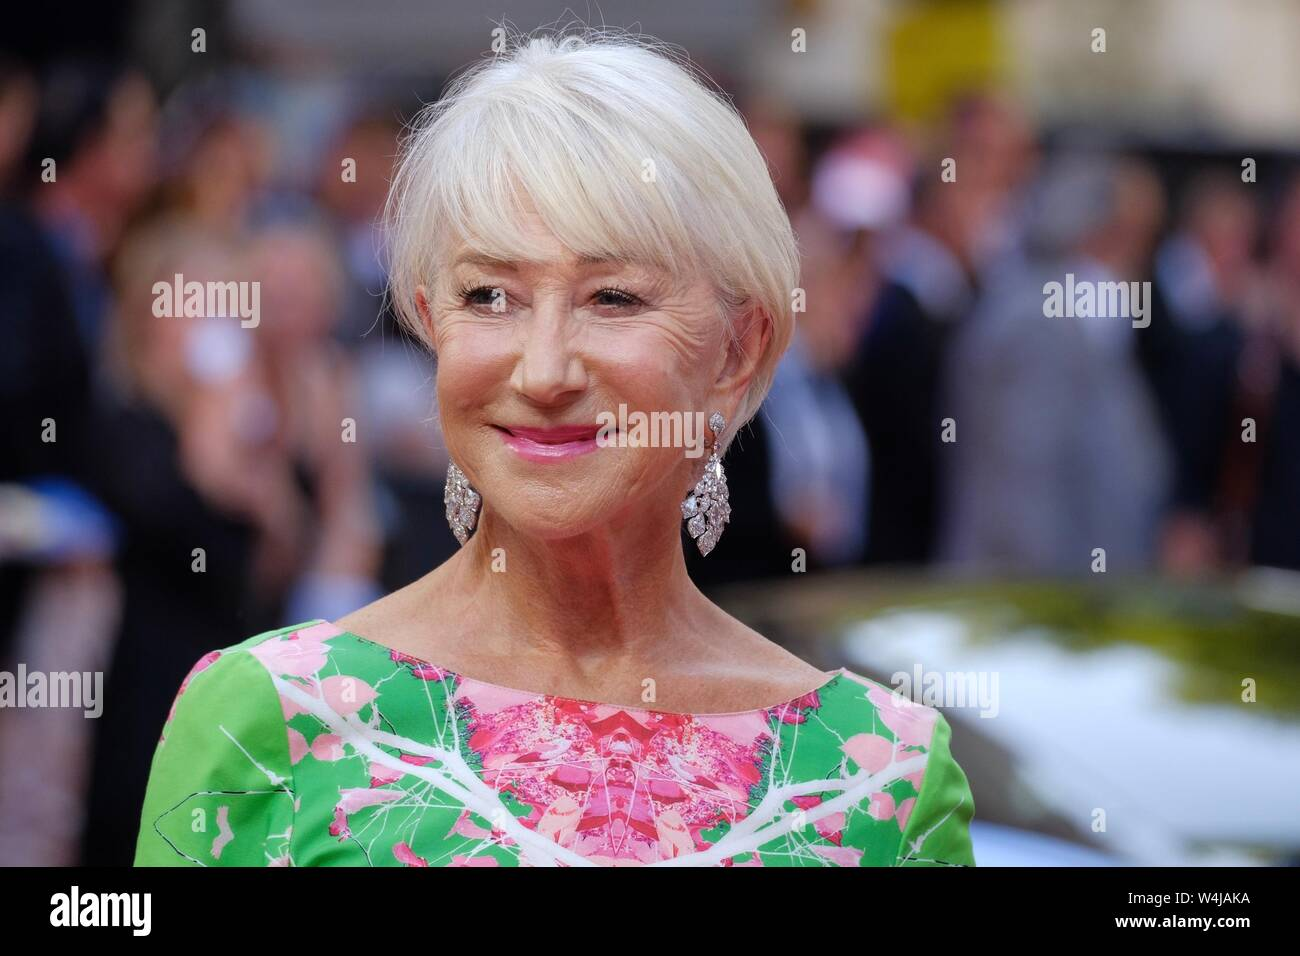 London, UK. 23rd July, 2019. Helen Mirren attends a special screening of Fast and Furious Hobbs and Shaw at the Curzon Mayfair on Tuesday, Jul. 23, 2019 . Picture by Julie Edwards. Credit: Julie Edwards/Alamy Live News Stock Photo